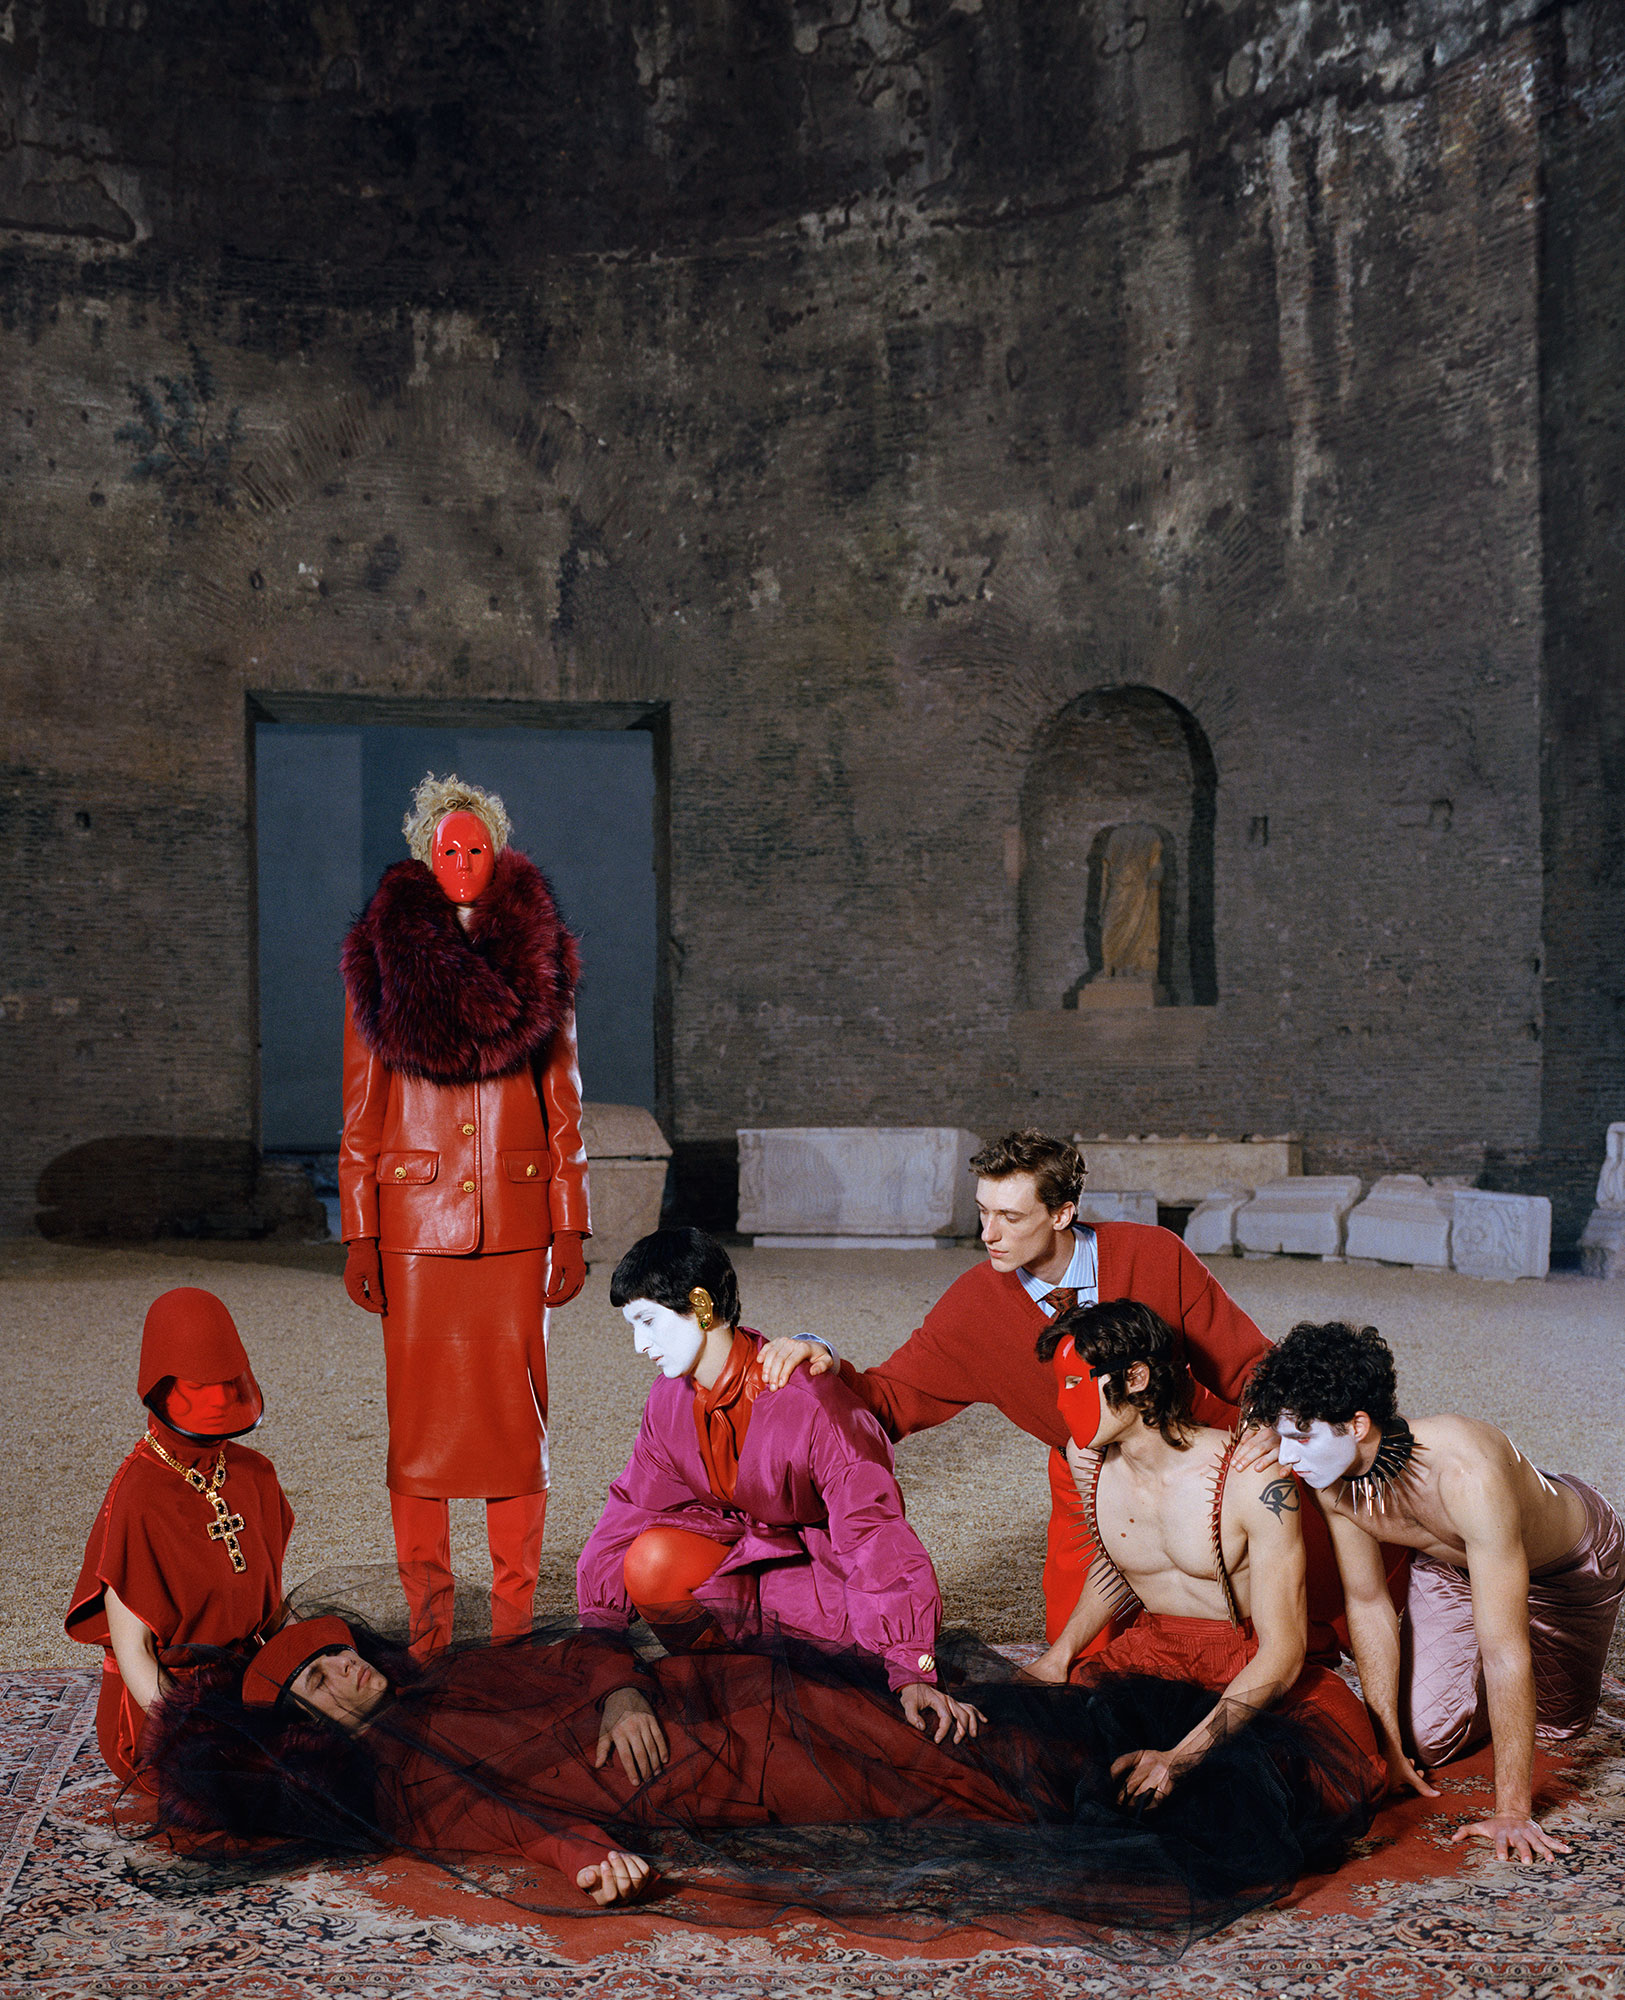 DUST MAGAZINE - Wearing Gucci AW19/20 Photographer: Reto Schimd Model: Francesco Di Napoli, Silvia Calderoni, Stefania Casini, Achille Bonito Oliva Stylist: James Valeri Location: Rome - Baths of Diocletian